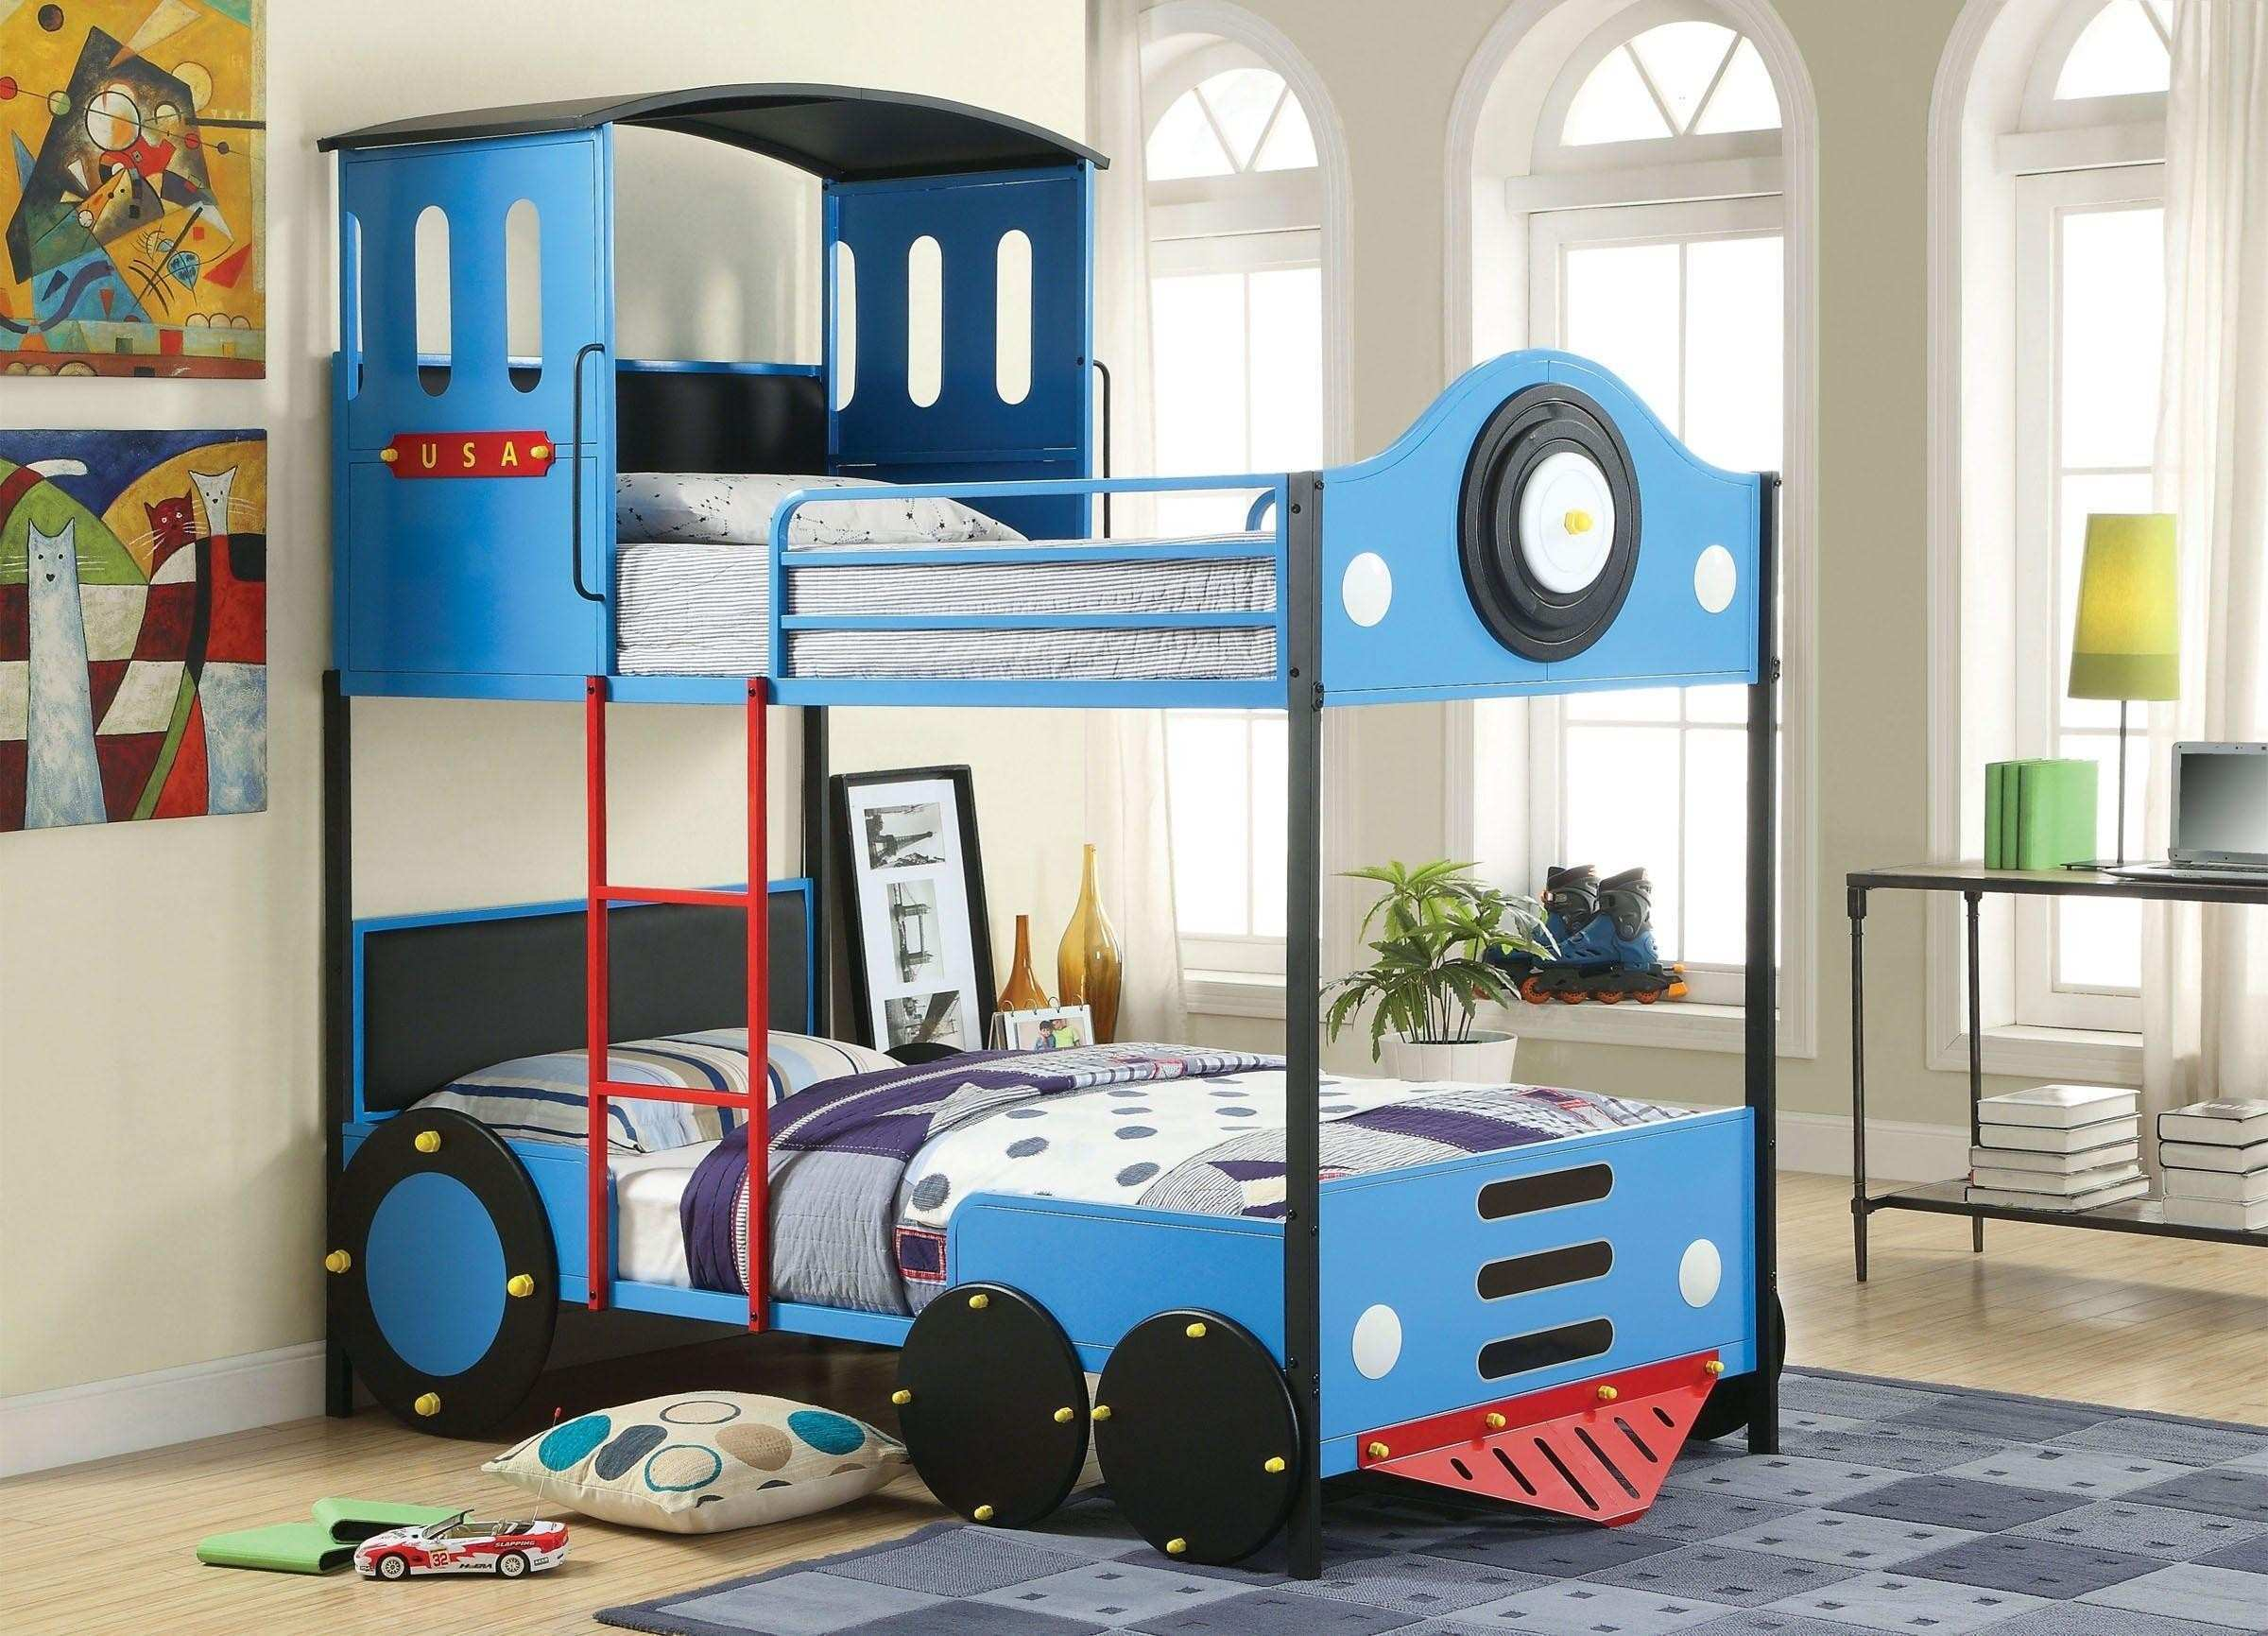 Train Bedroom Decor New Design Kids Bedroom Awesome Wall Decals for